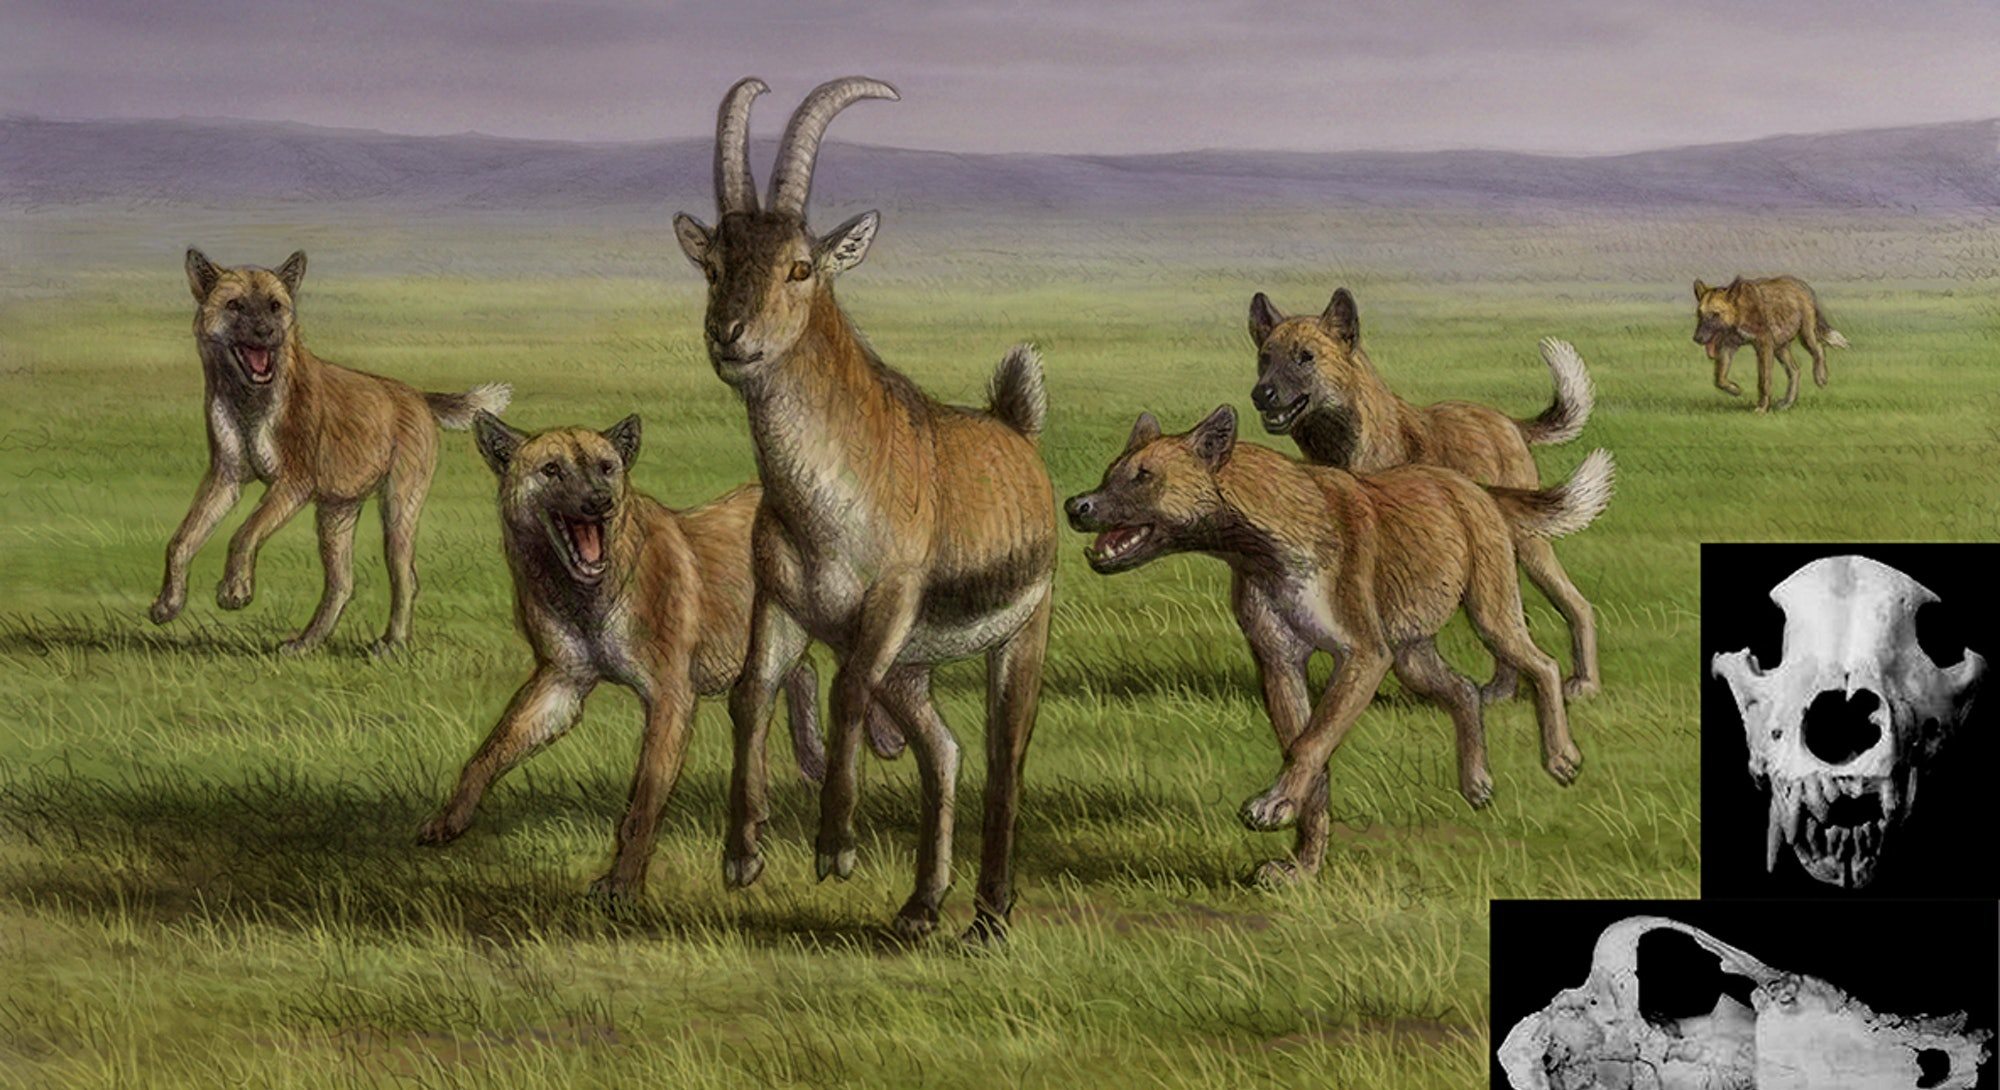 Artist's impression of the ancient dogs